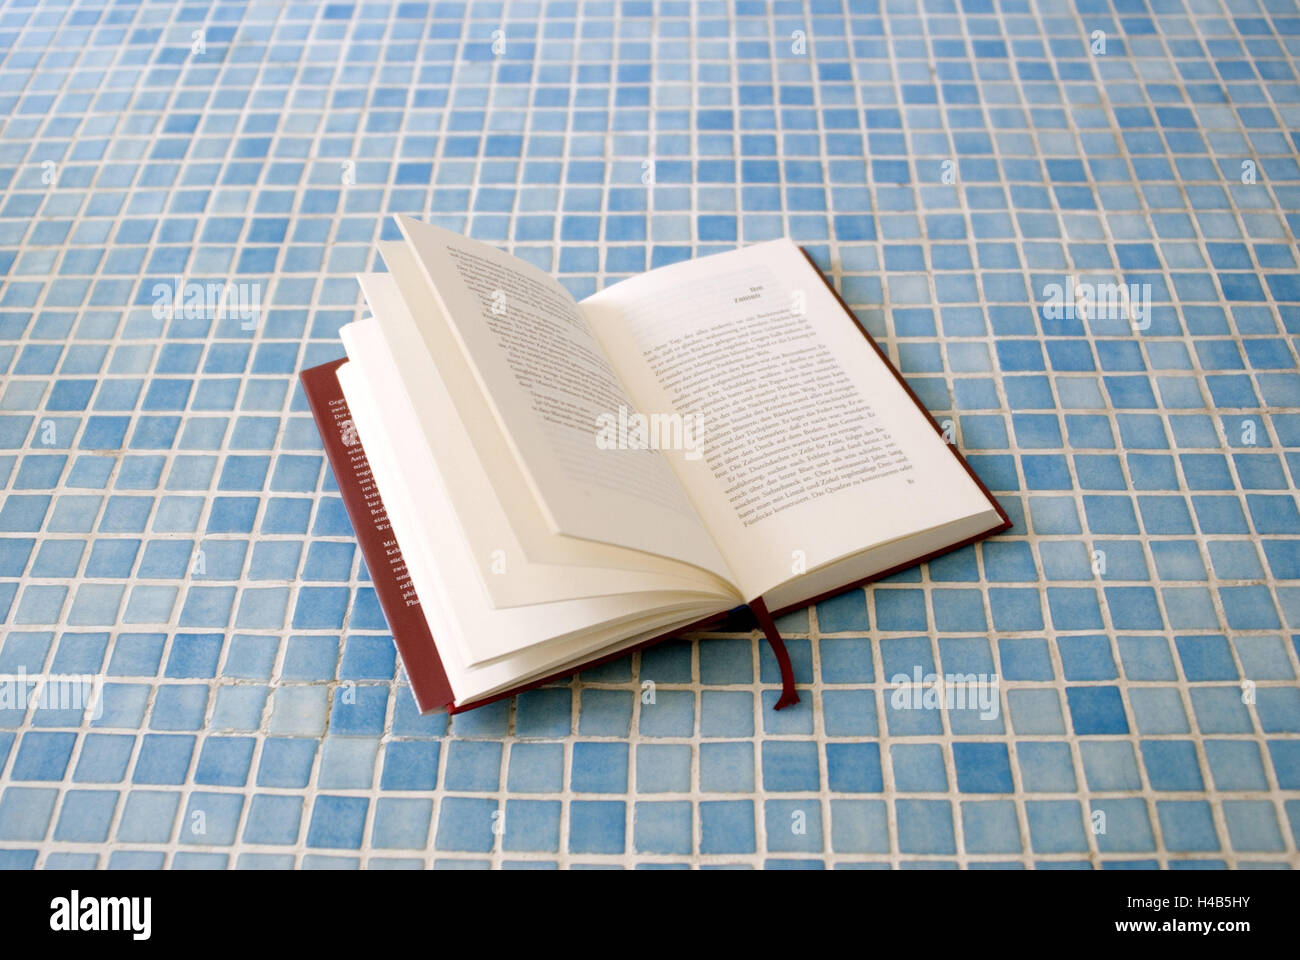 Book, openly, mosaic floor, blue, bathrooms, bath, turquoise, light ...